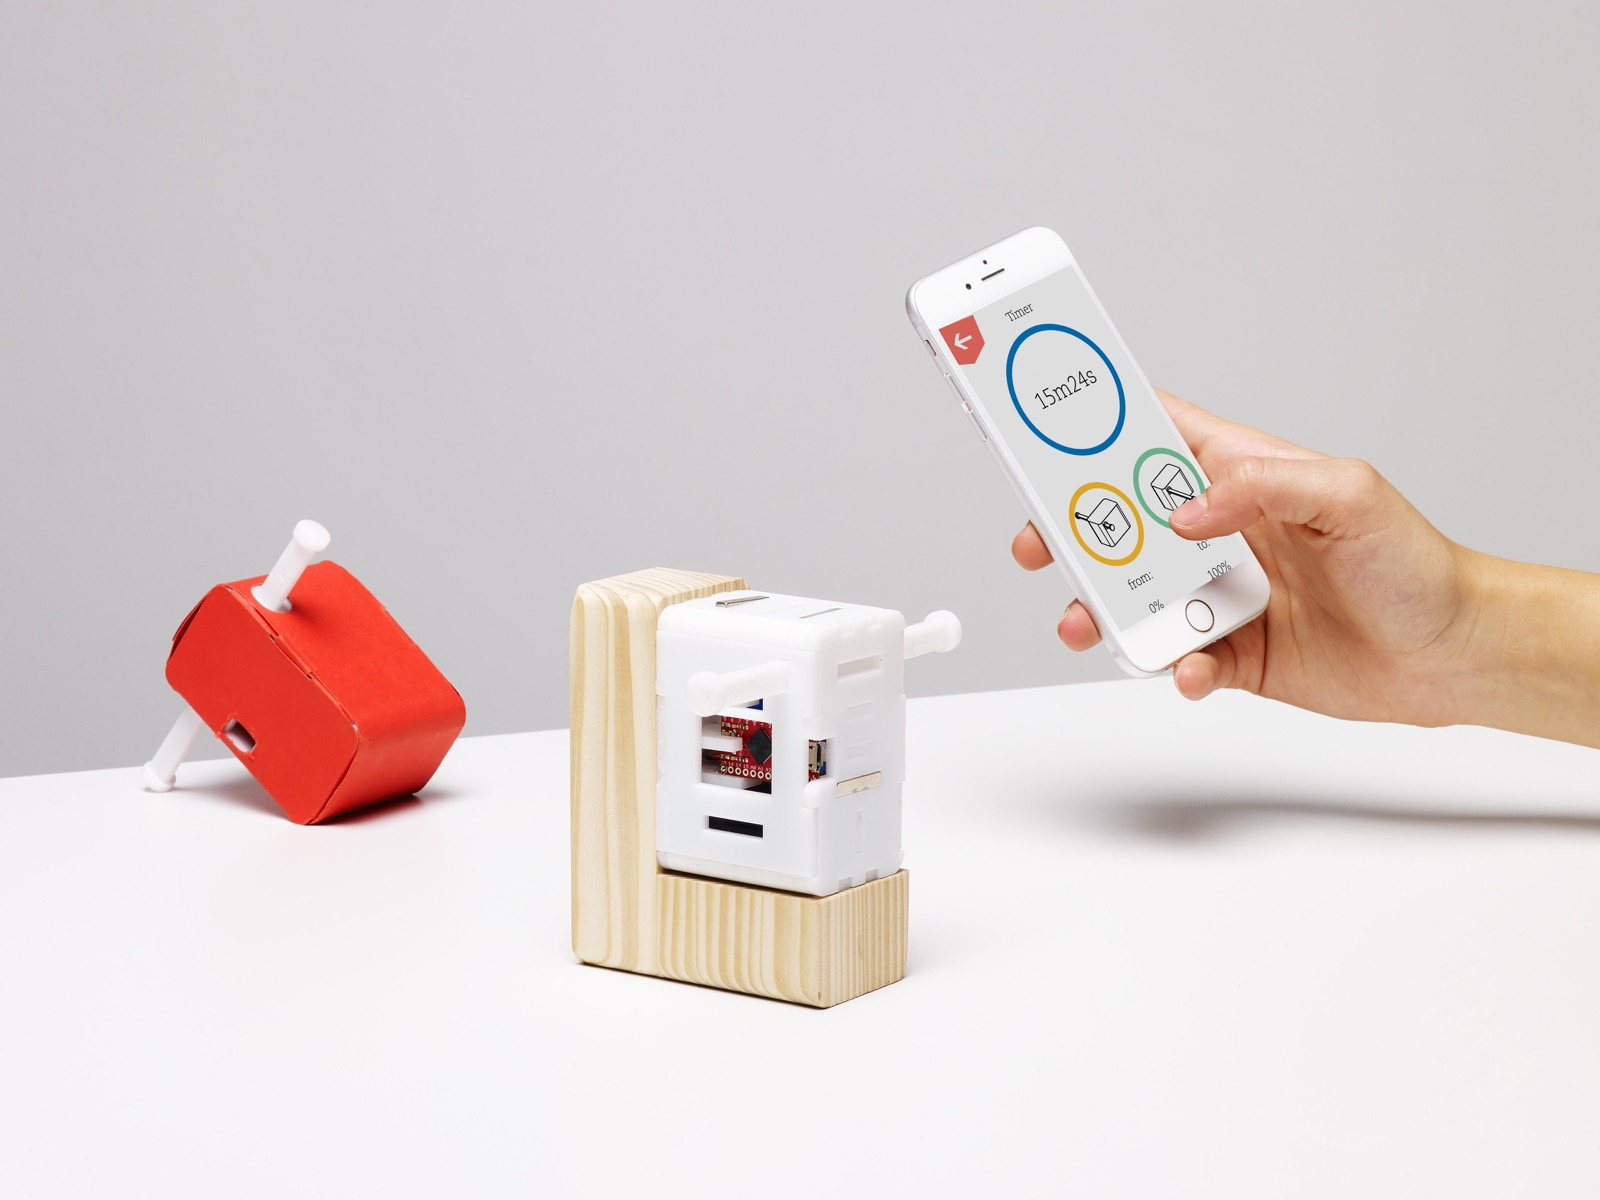 nelson tiny device that helps push a switch on everyday objects ecal ch. Black Bedroom Furniture Sets. Home Design Ideas